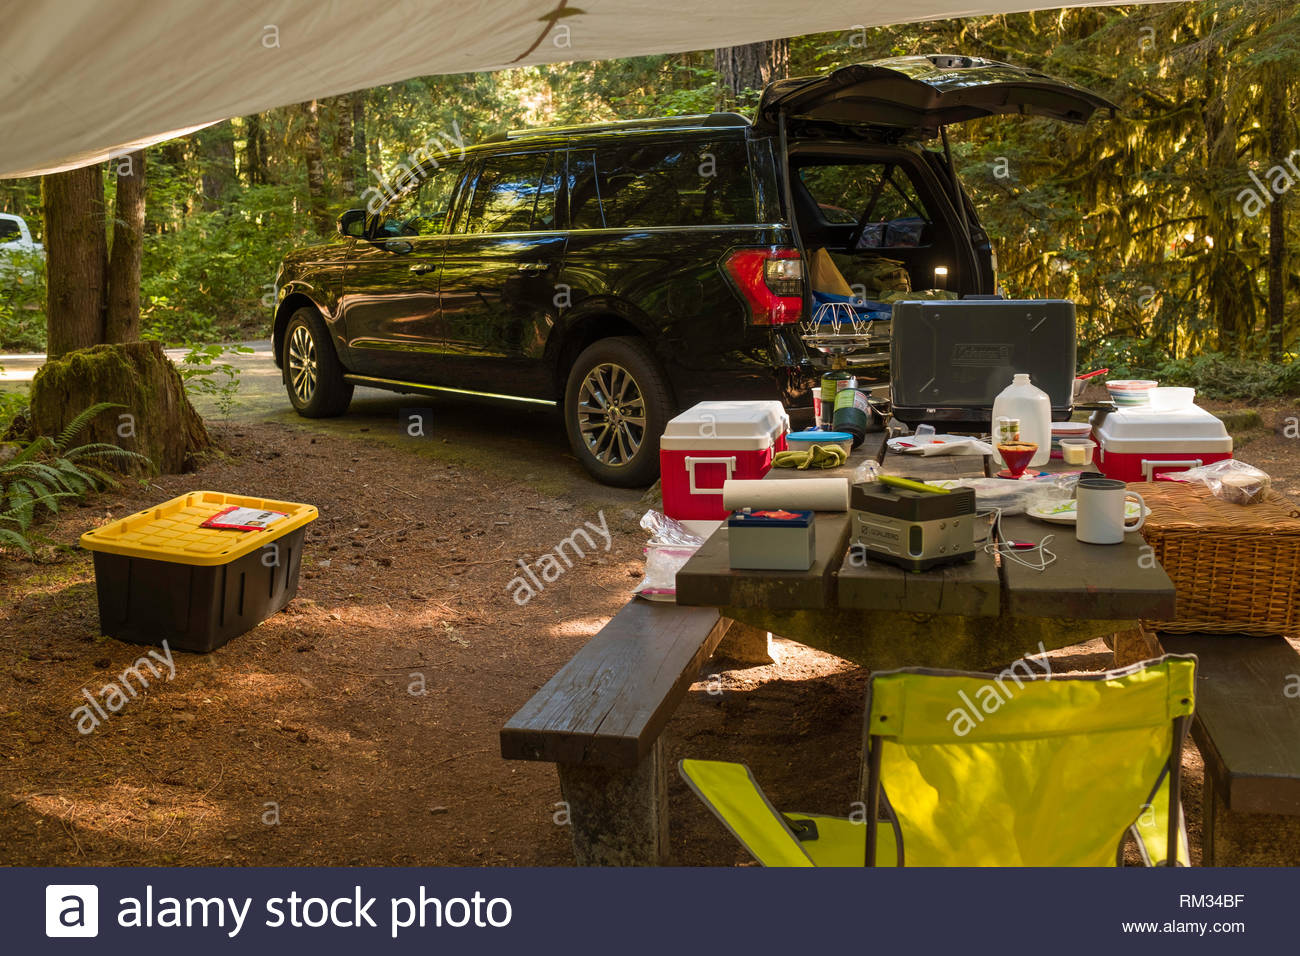 Picnic table covered with sundry camping items in front of a black Ford Expedition EL Extended SUV parked at campsite with rear lift gate open, Humbug Stock Photo